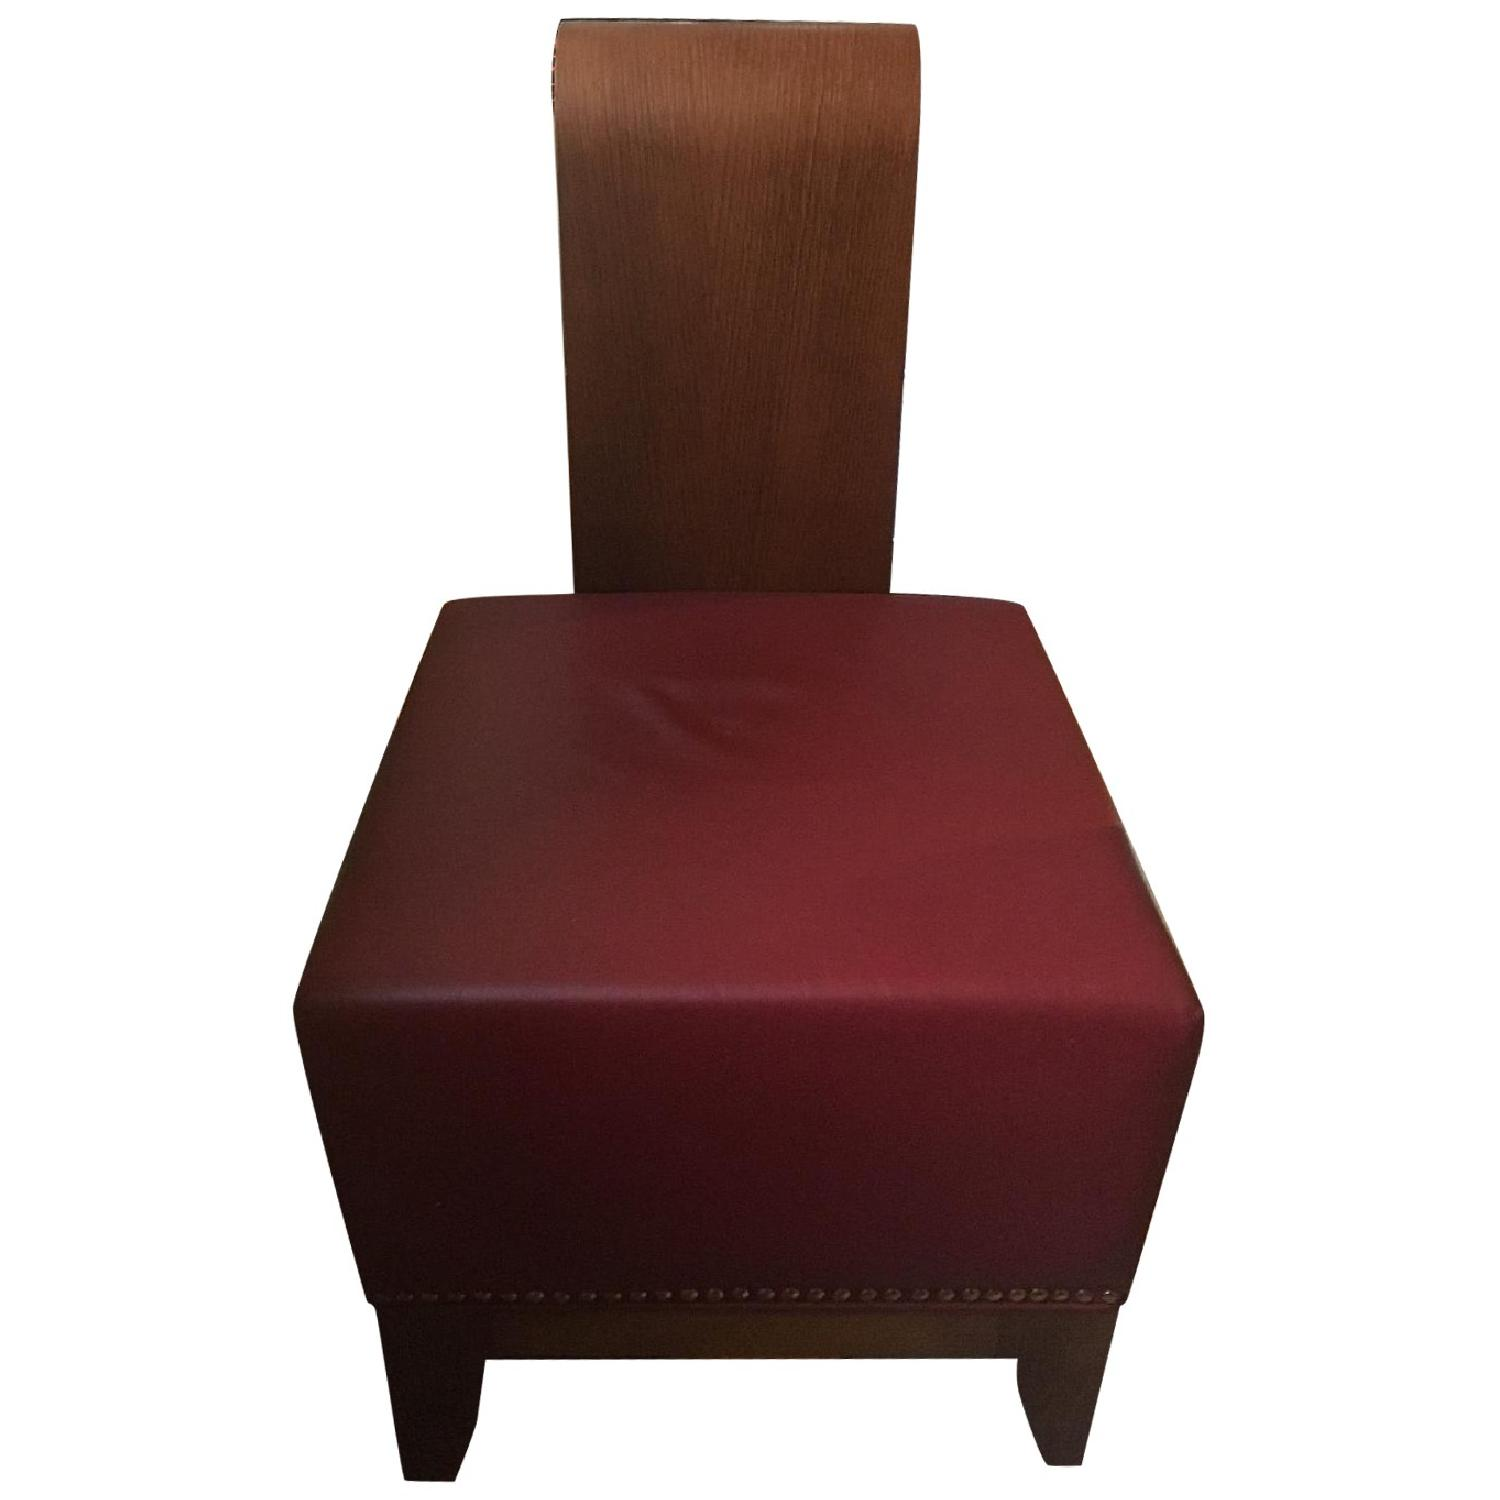 Custom Upholstered Red Leather Ottoman/Stool - image-0